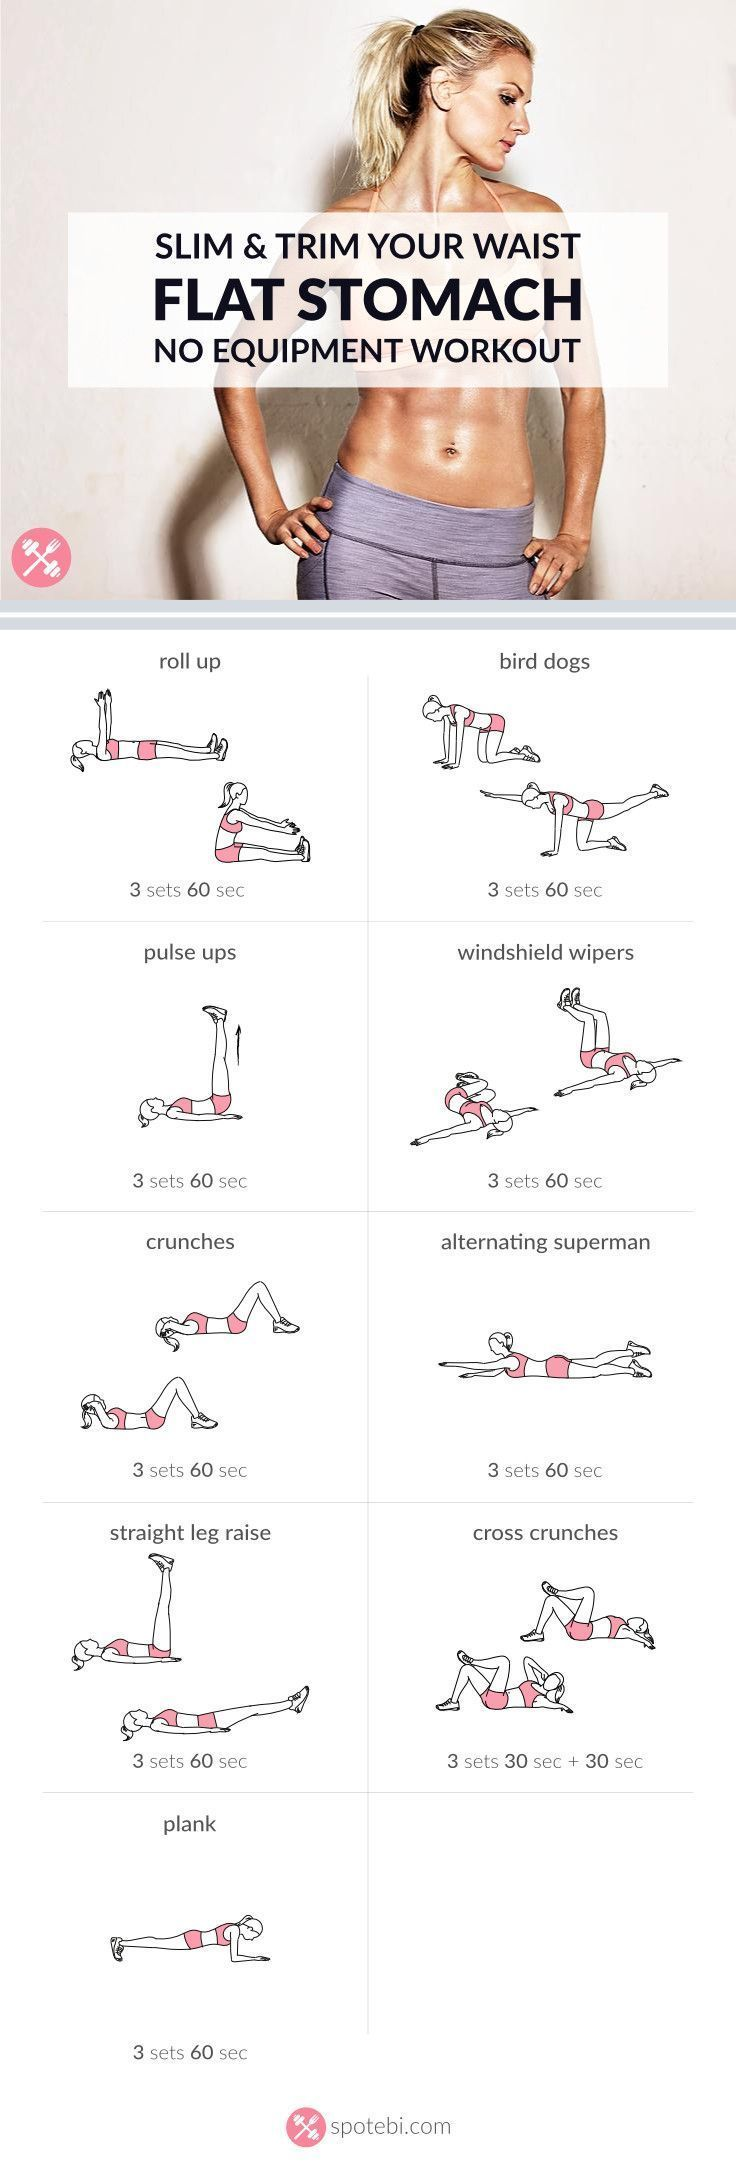 Below are 9 amazing and different ab workouts that you can use to target different areas of your core, so you can mix and match your workouts and keep them fun and challenging with different levels of intensity. Try one out at the end of your workout today and see if you like it! Enjoy!Find more relevant stuff: victoriajohnson.wordpress.com